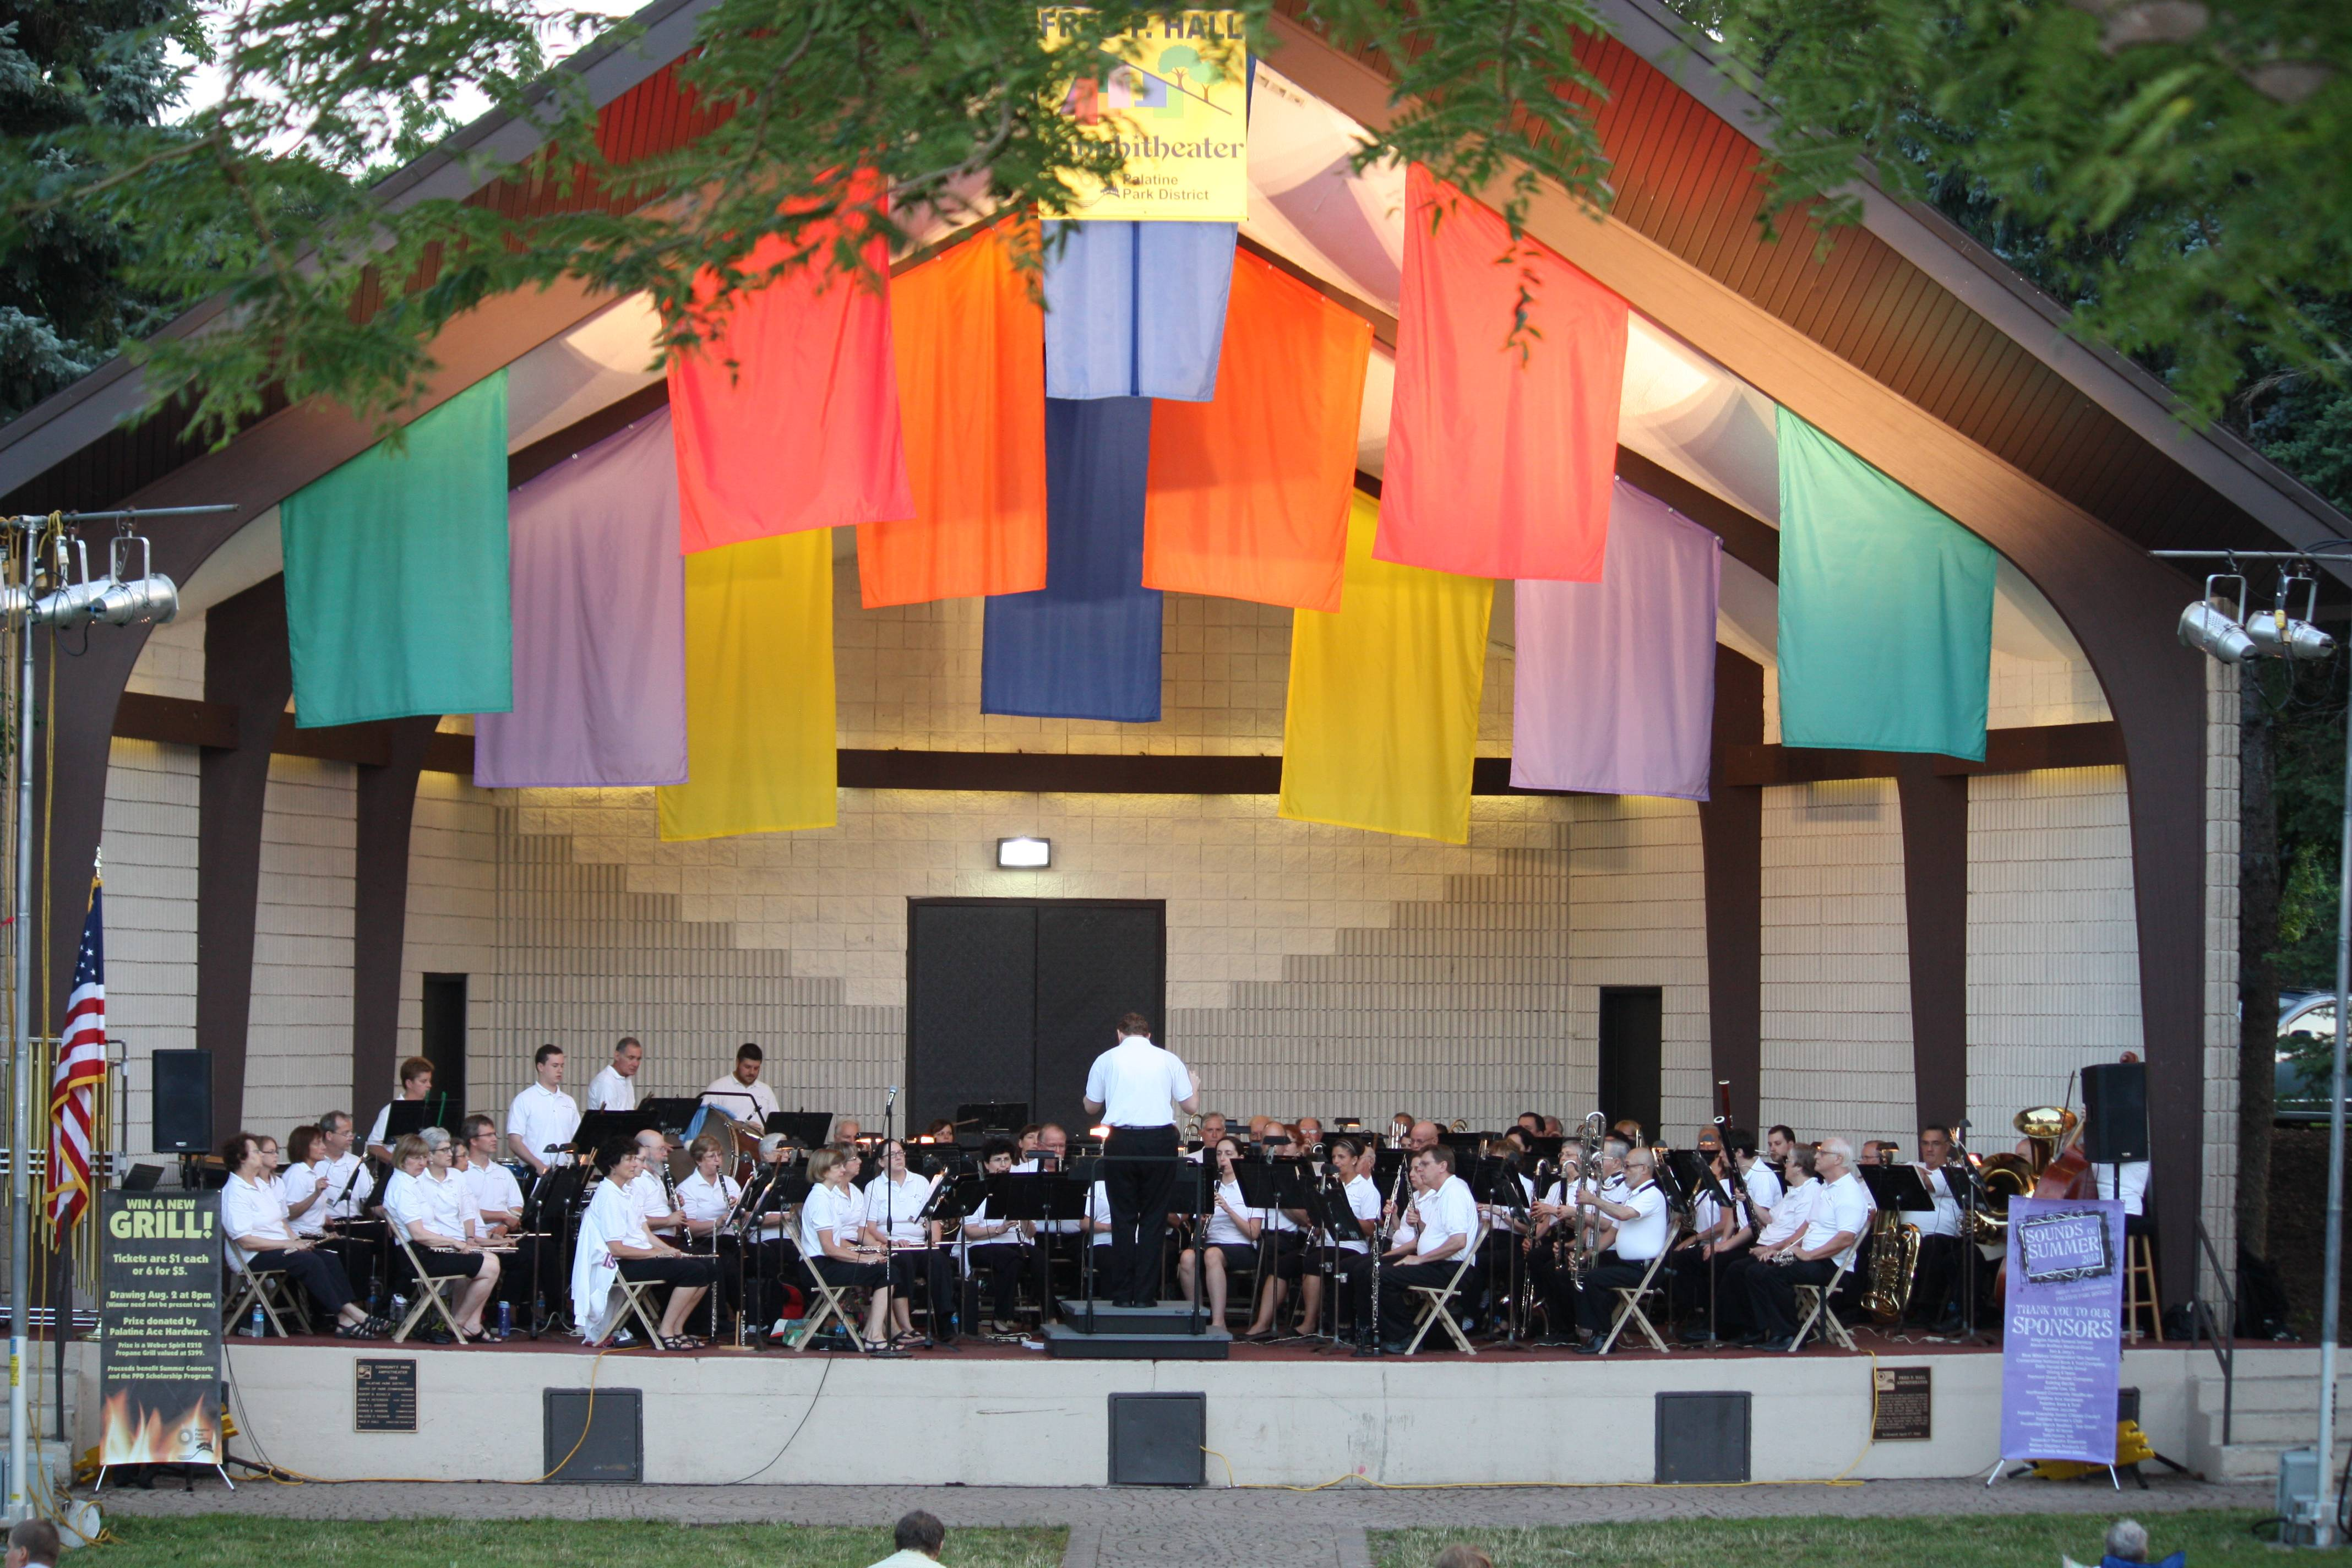 Palatine Concert Band performed as part of the Sounds of Summer Series.